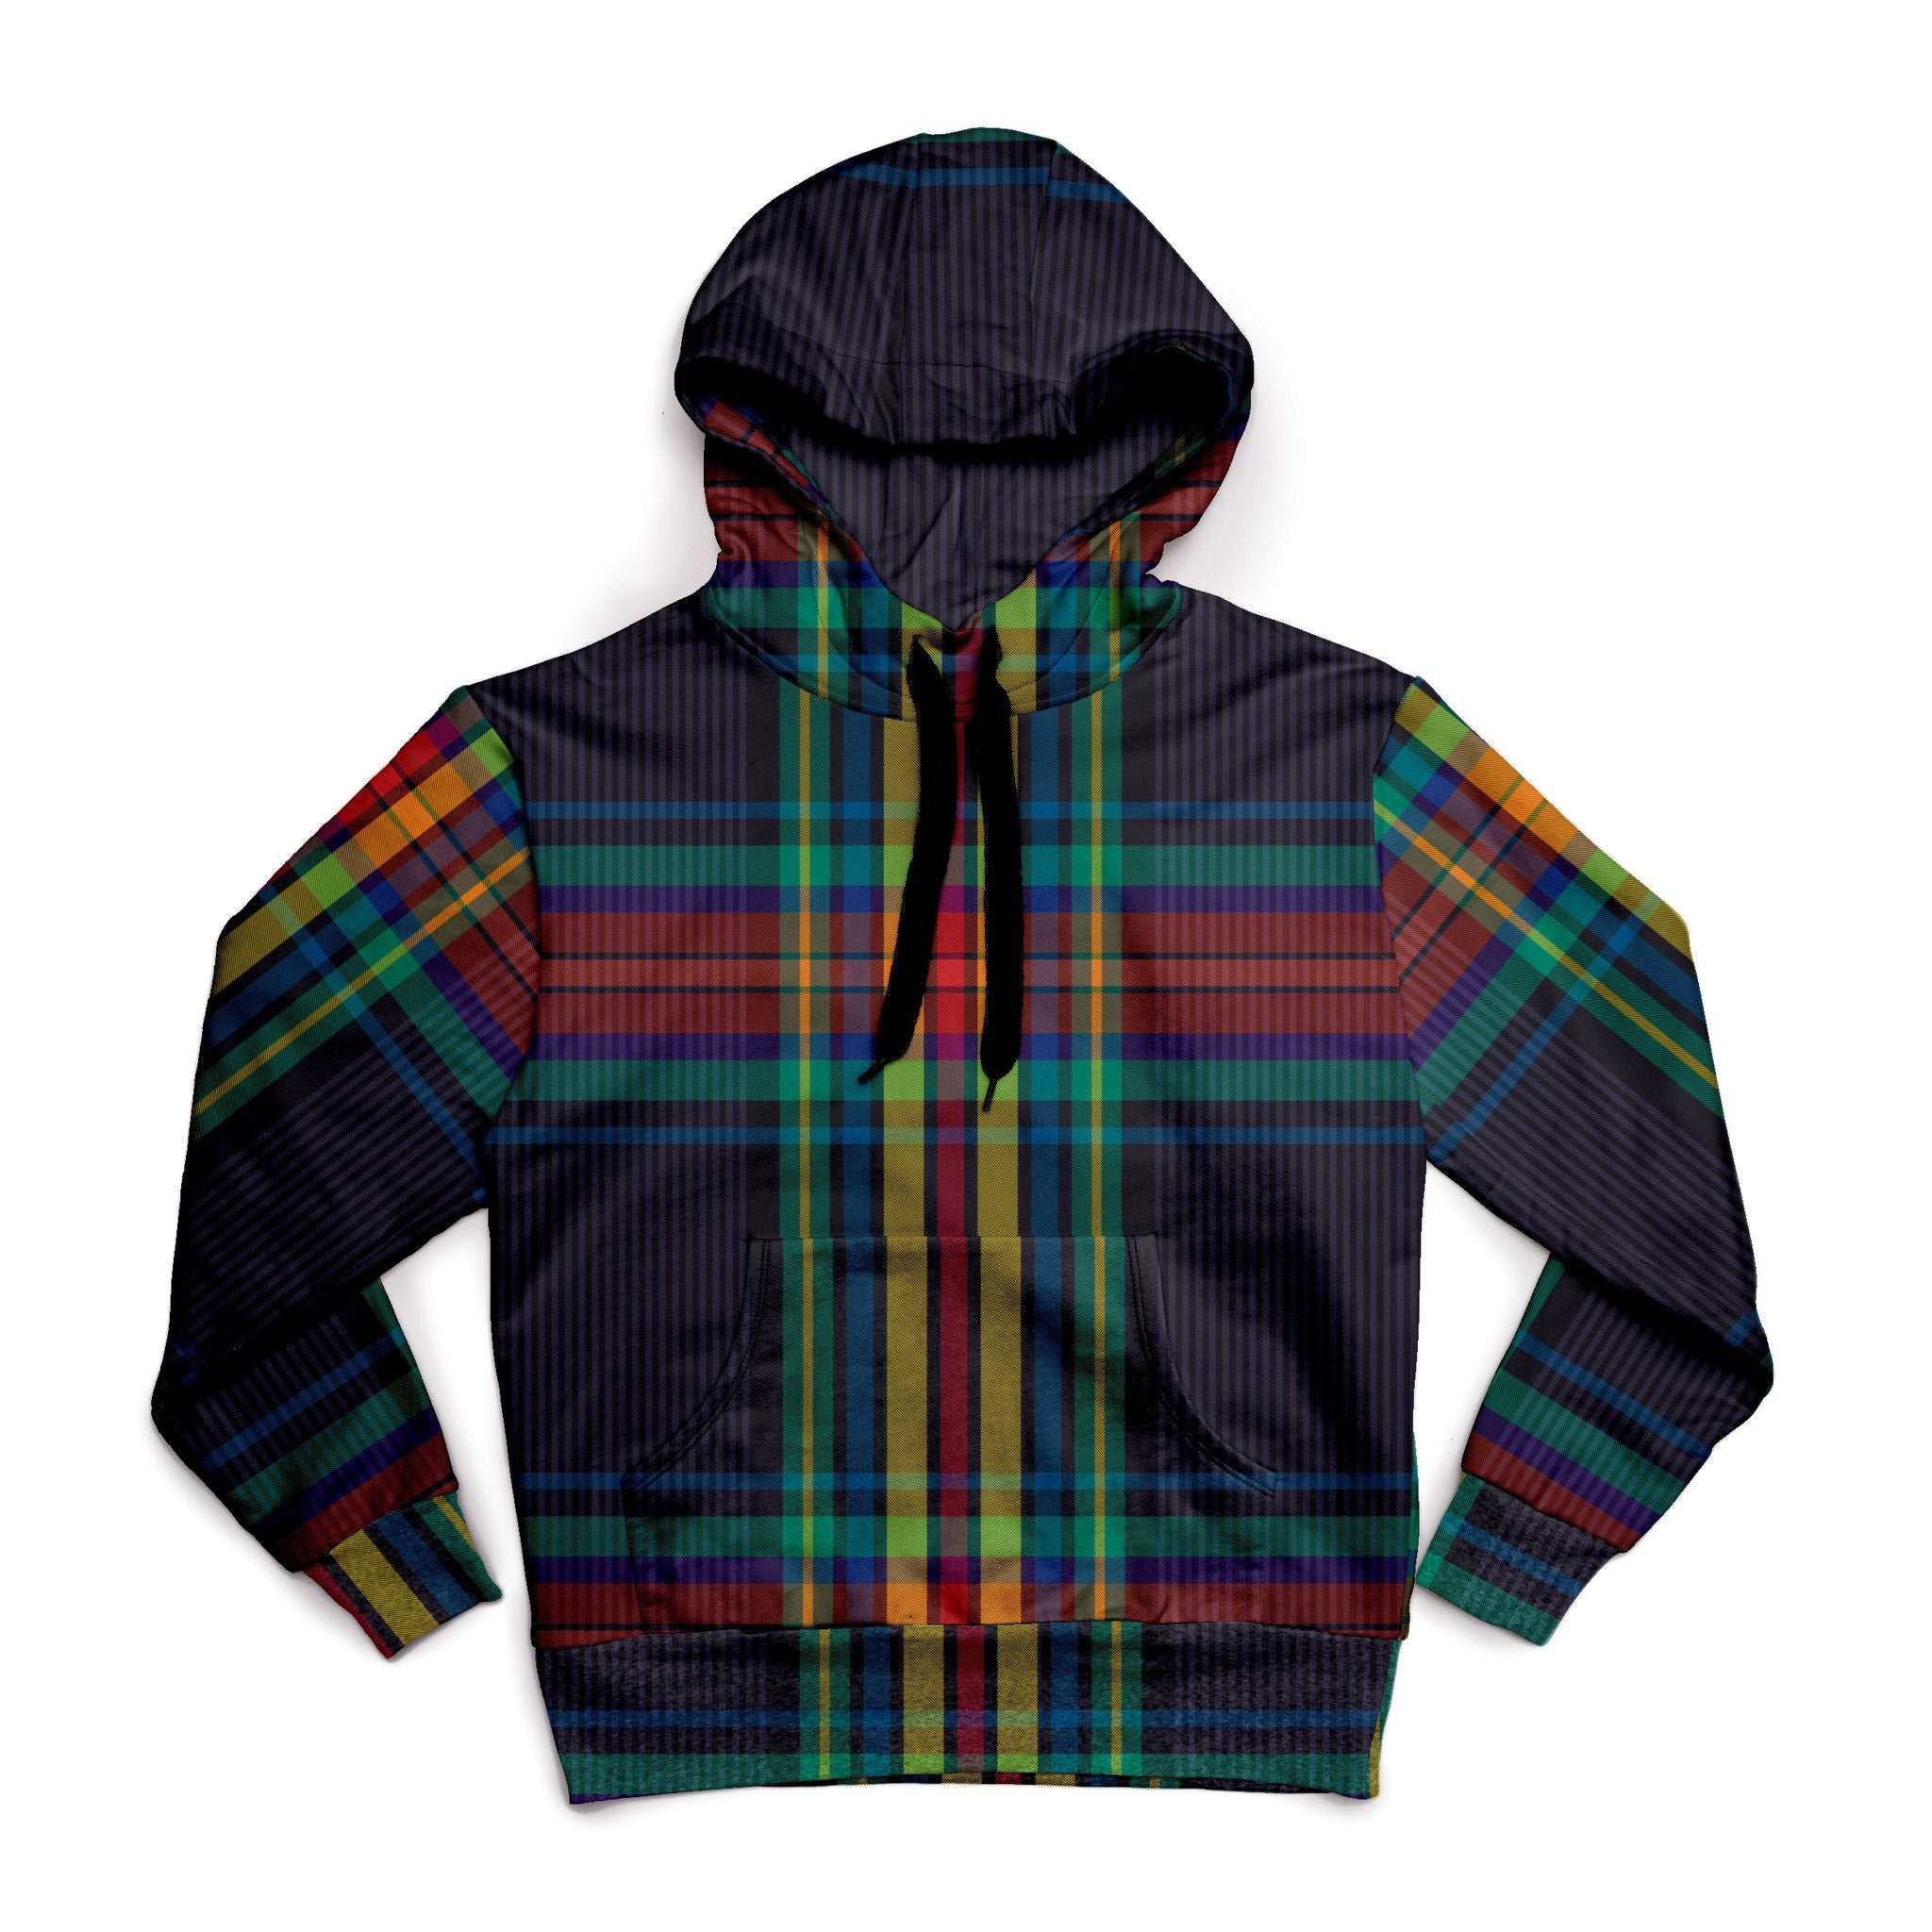 The Gala Plaid Sweatshirt